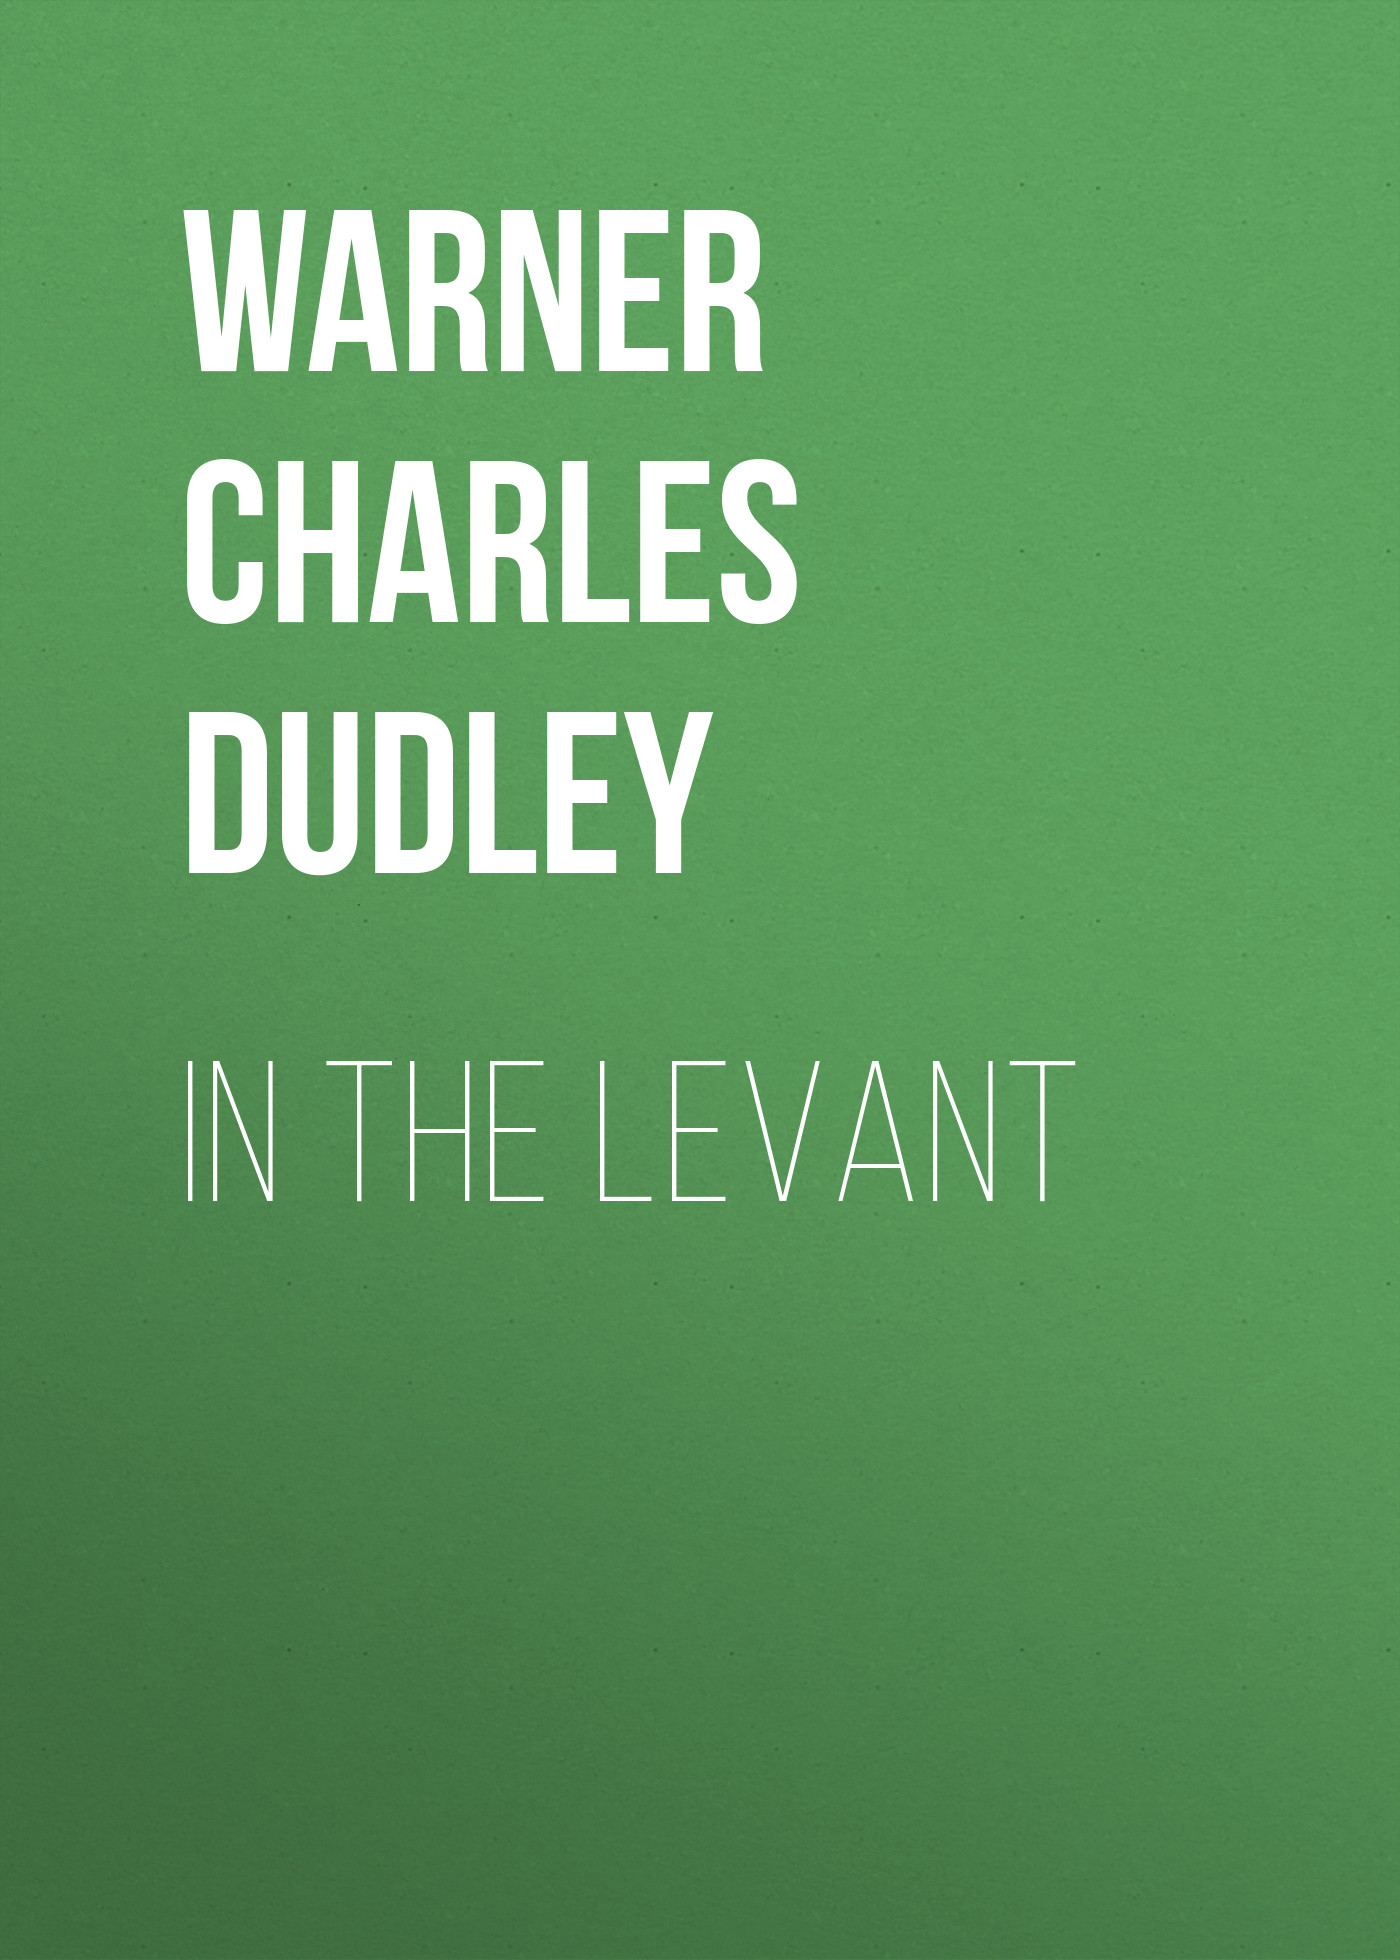 Фото - Warner Charles Dudley In The Levant warner charles dudley studies in the south and west with comments on canada